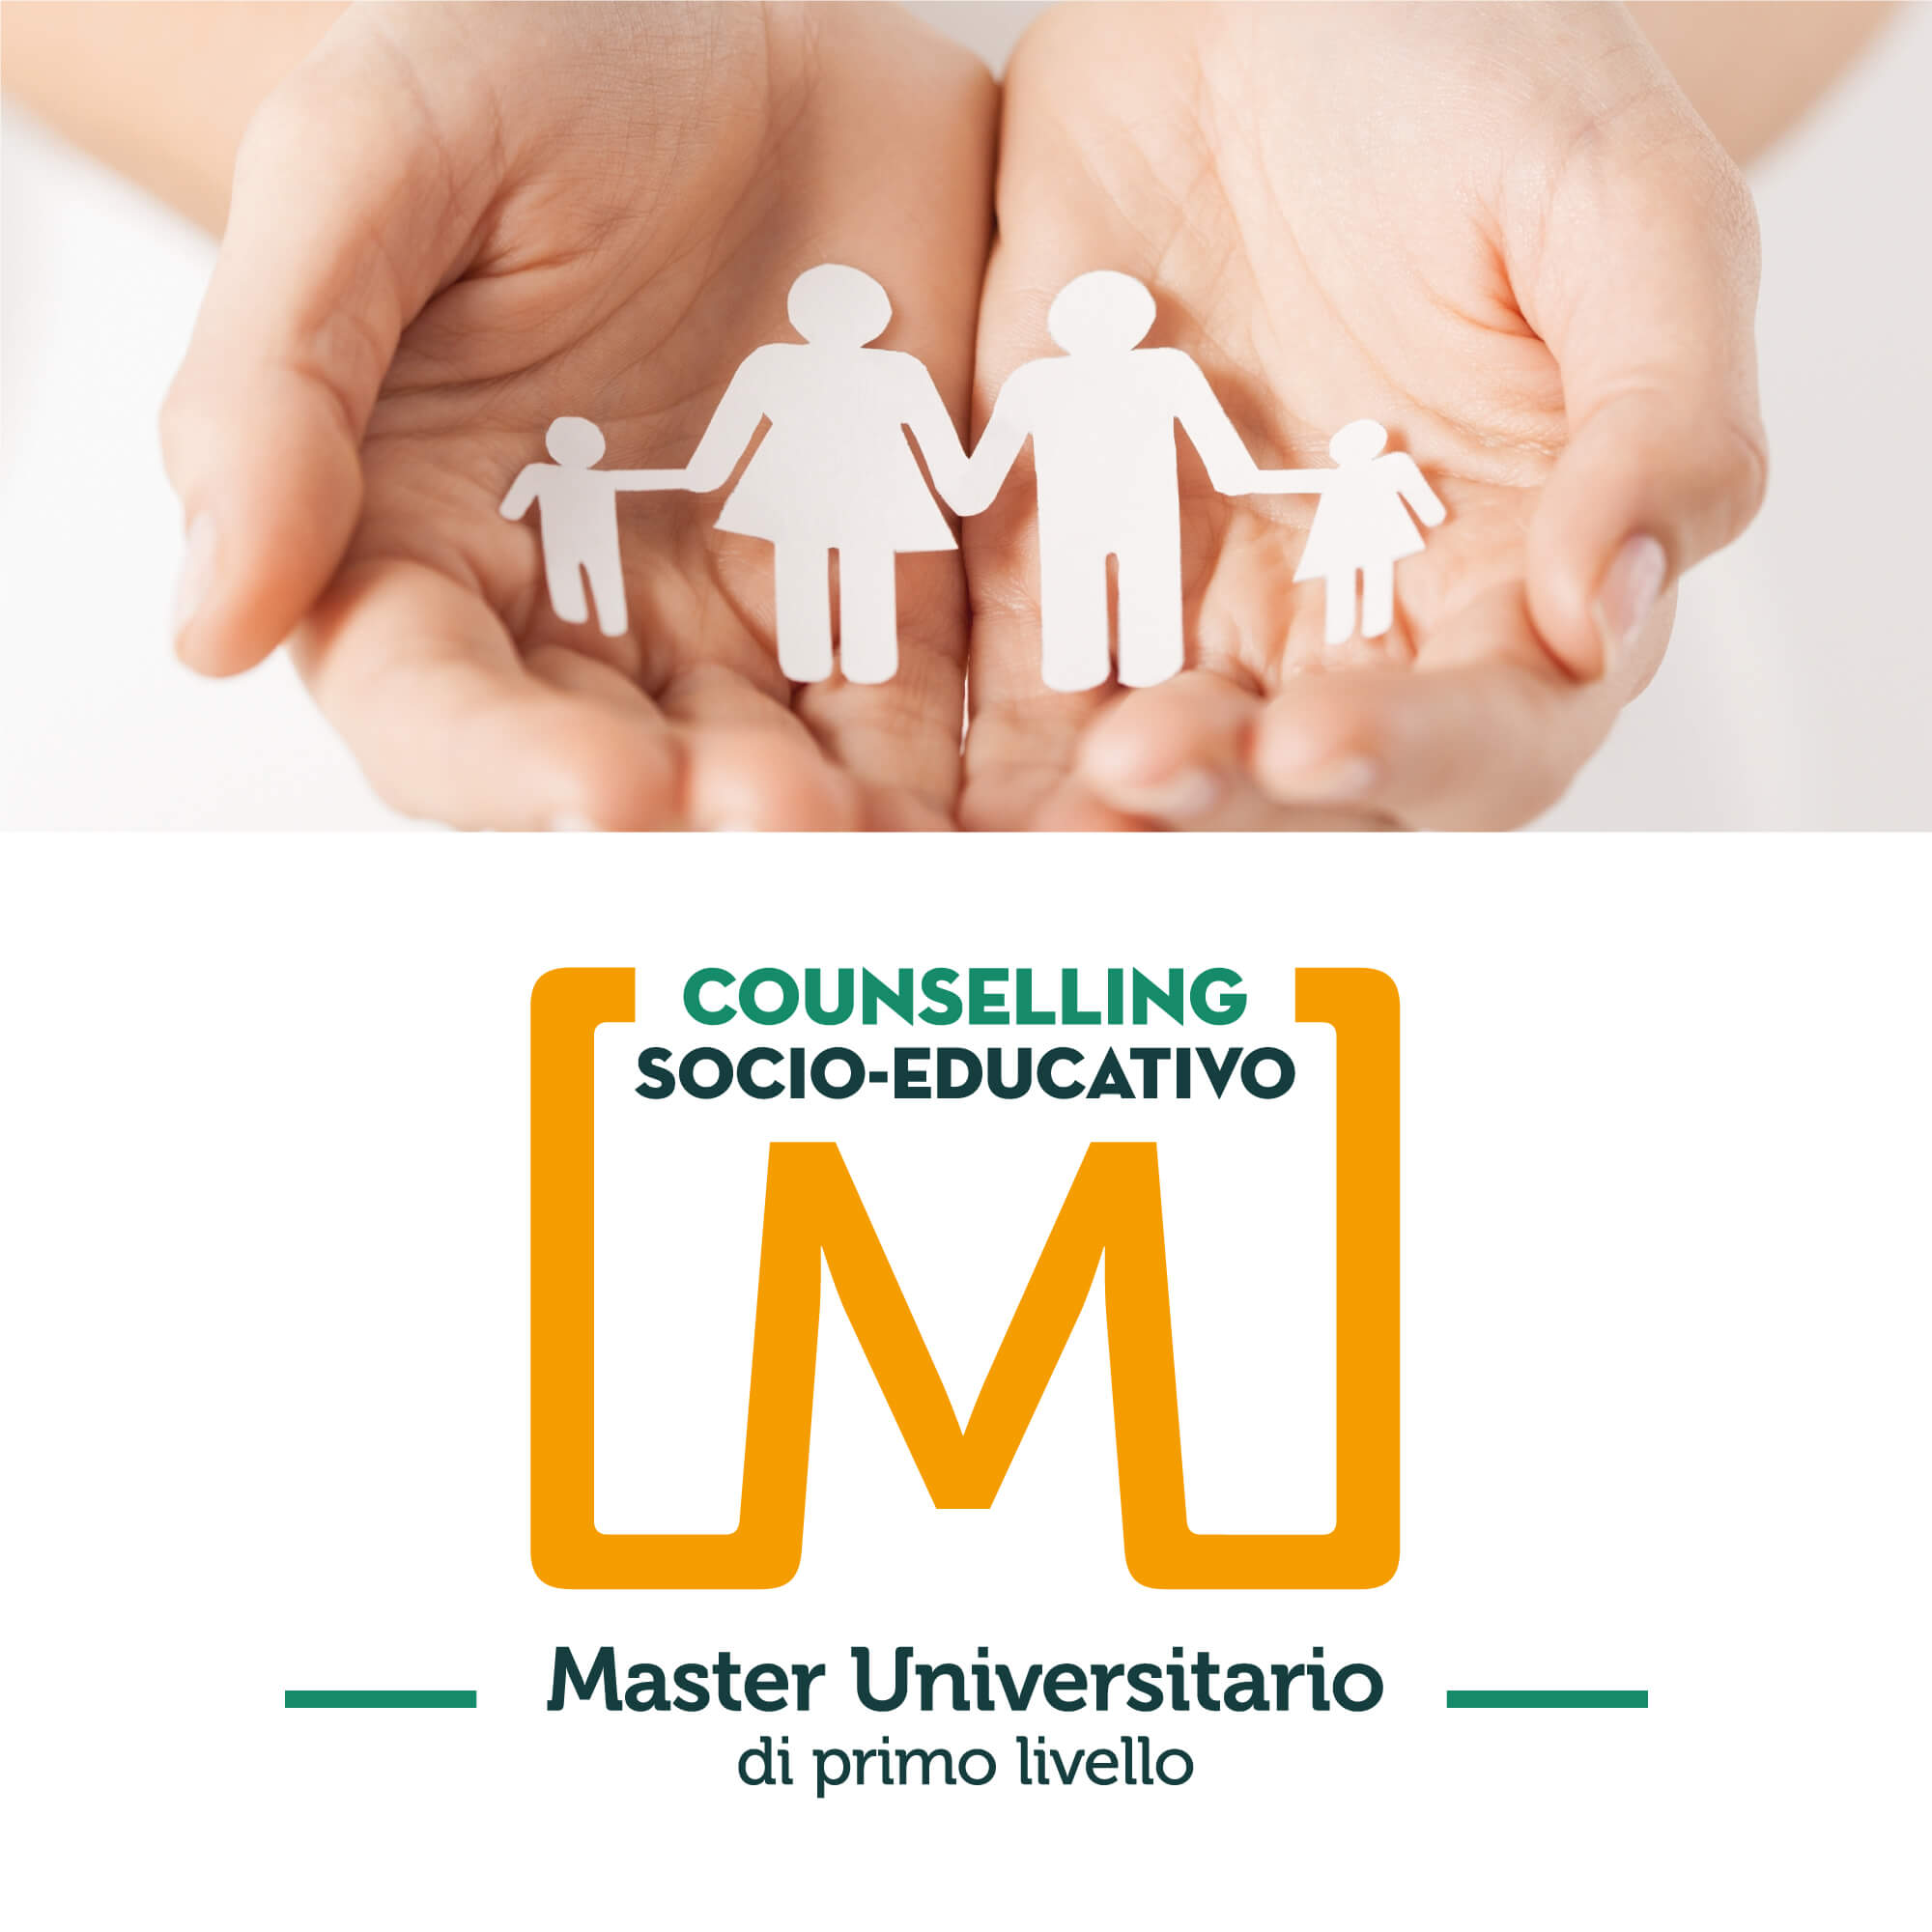 Counselling Socio-Educativo – Master universitario di primo livello